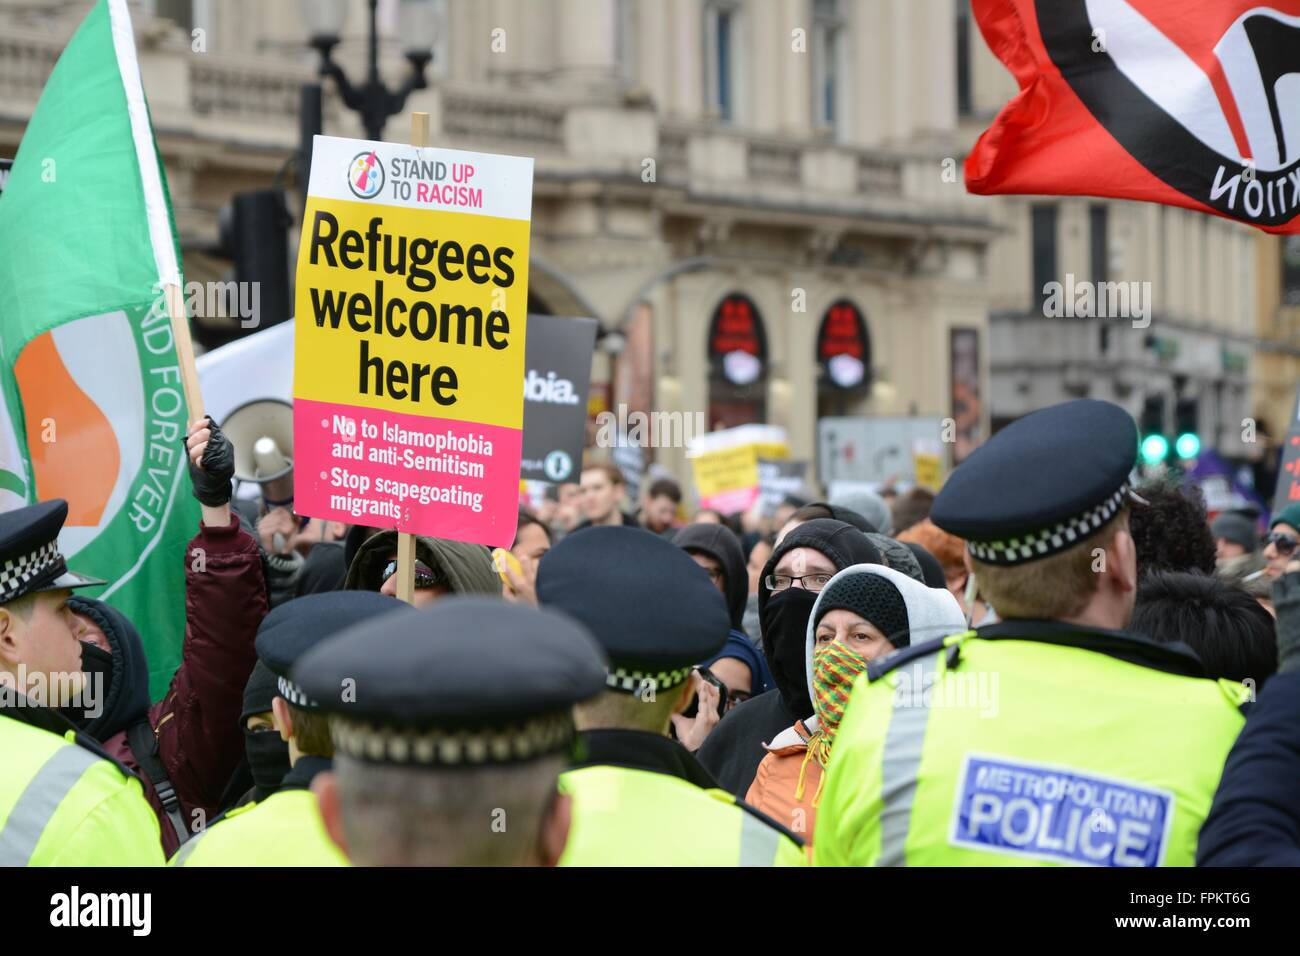 London, UK. March 19th 2016. Placard is held aloft as anti-Fascists and Britain First faces off. Credit:  Marc Ward/Alamy - Stock Image